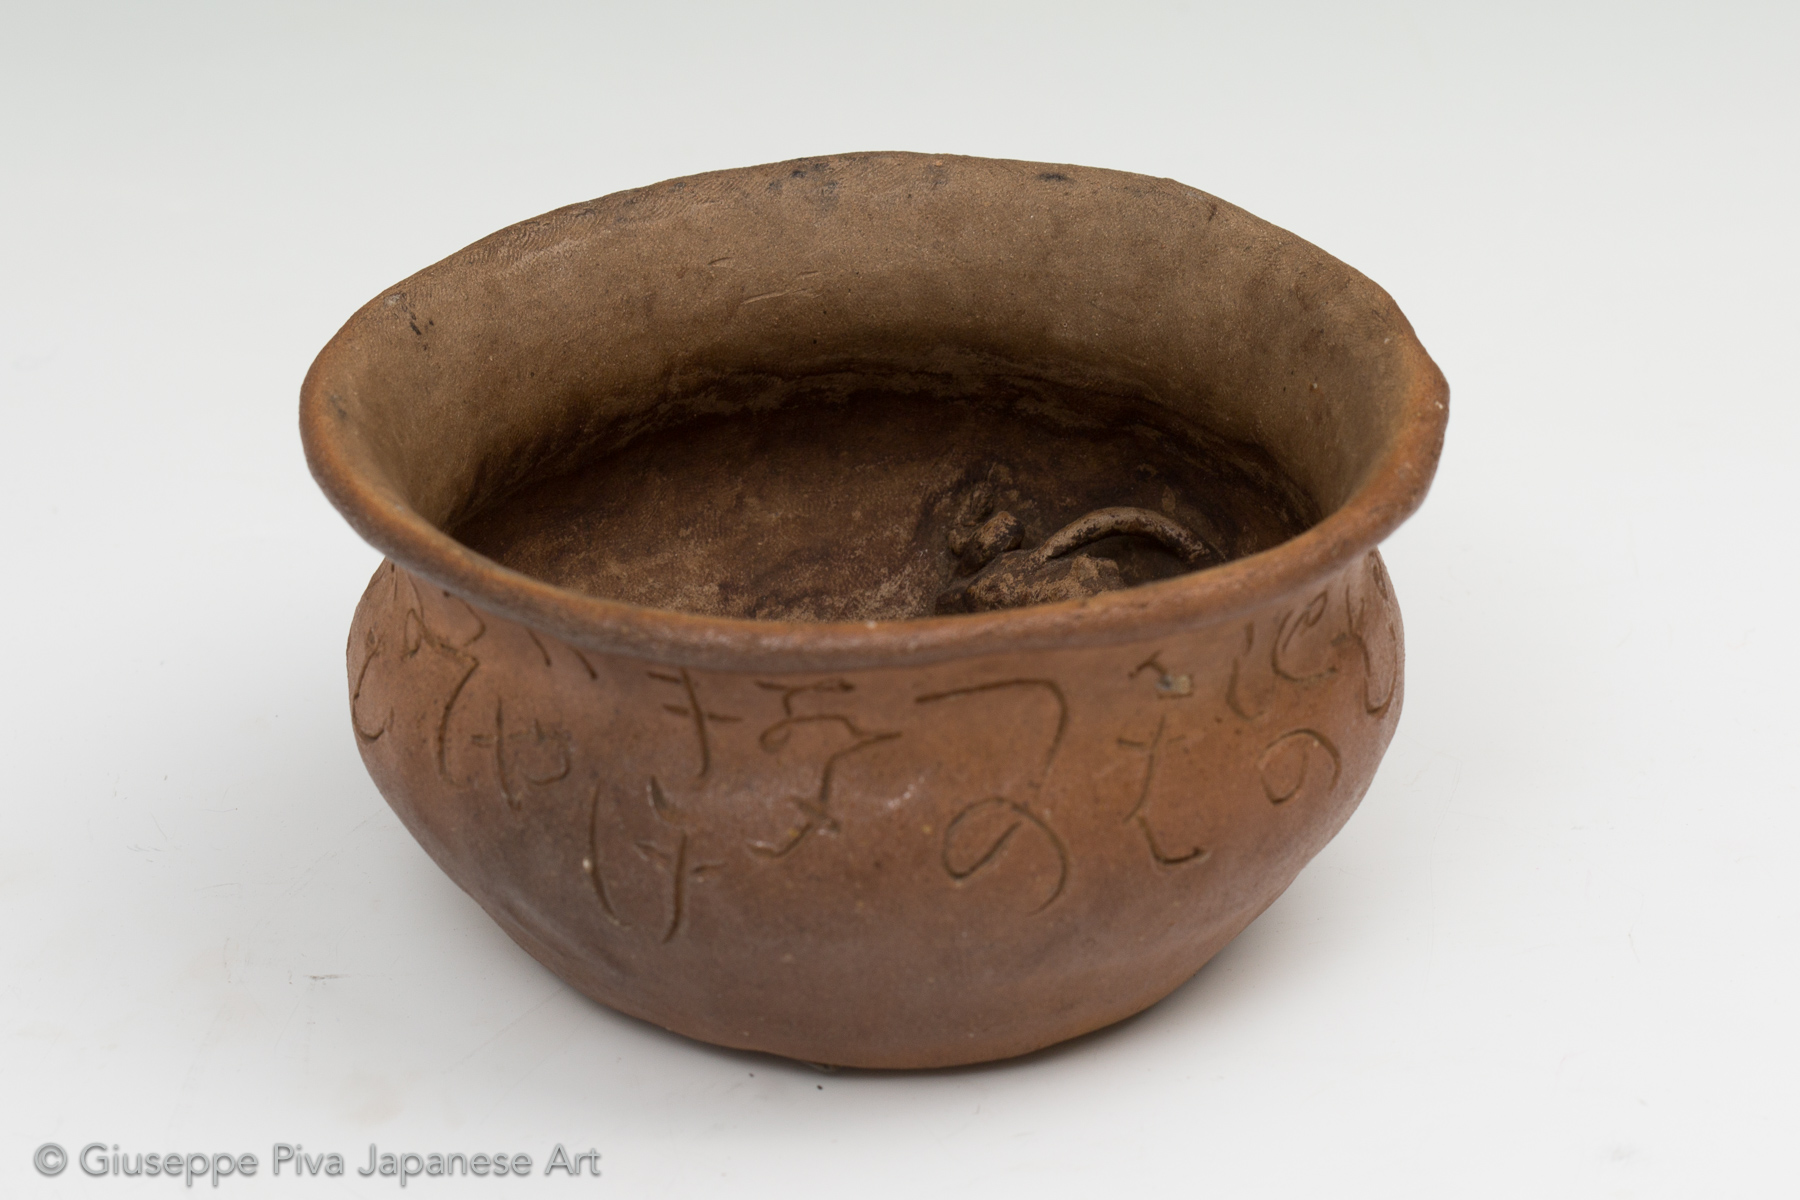 Kensui, water container with inscribed poem and a frog inside